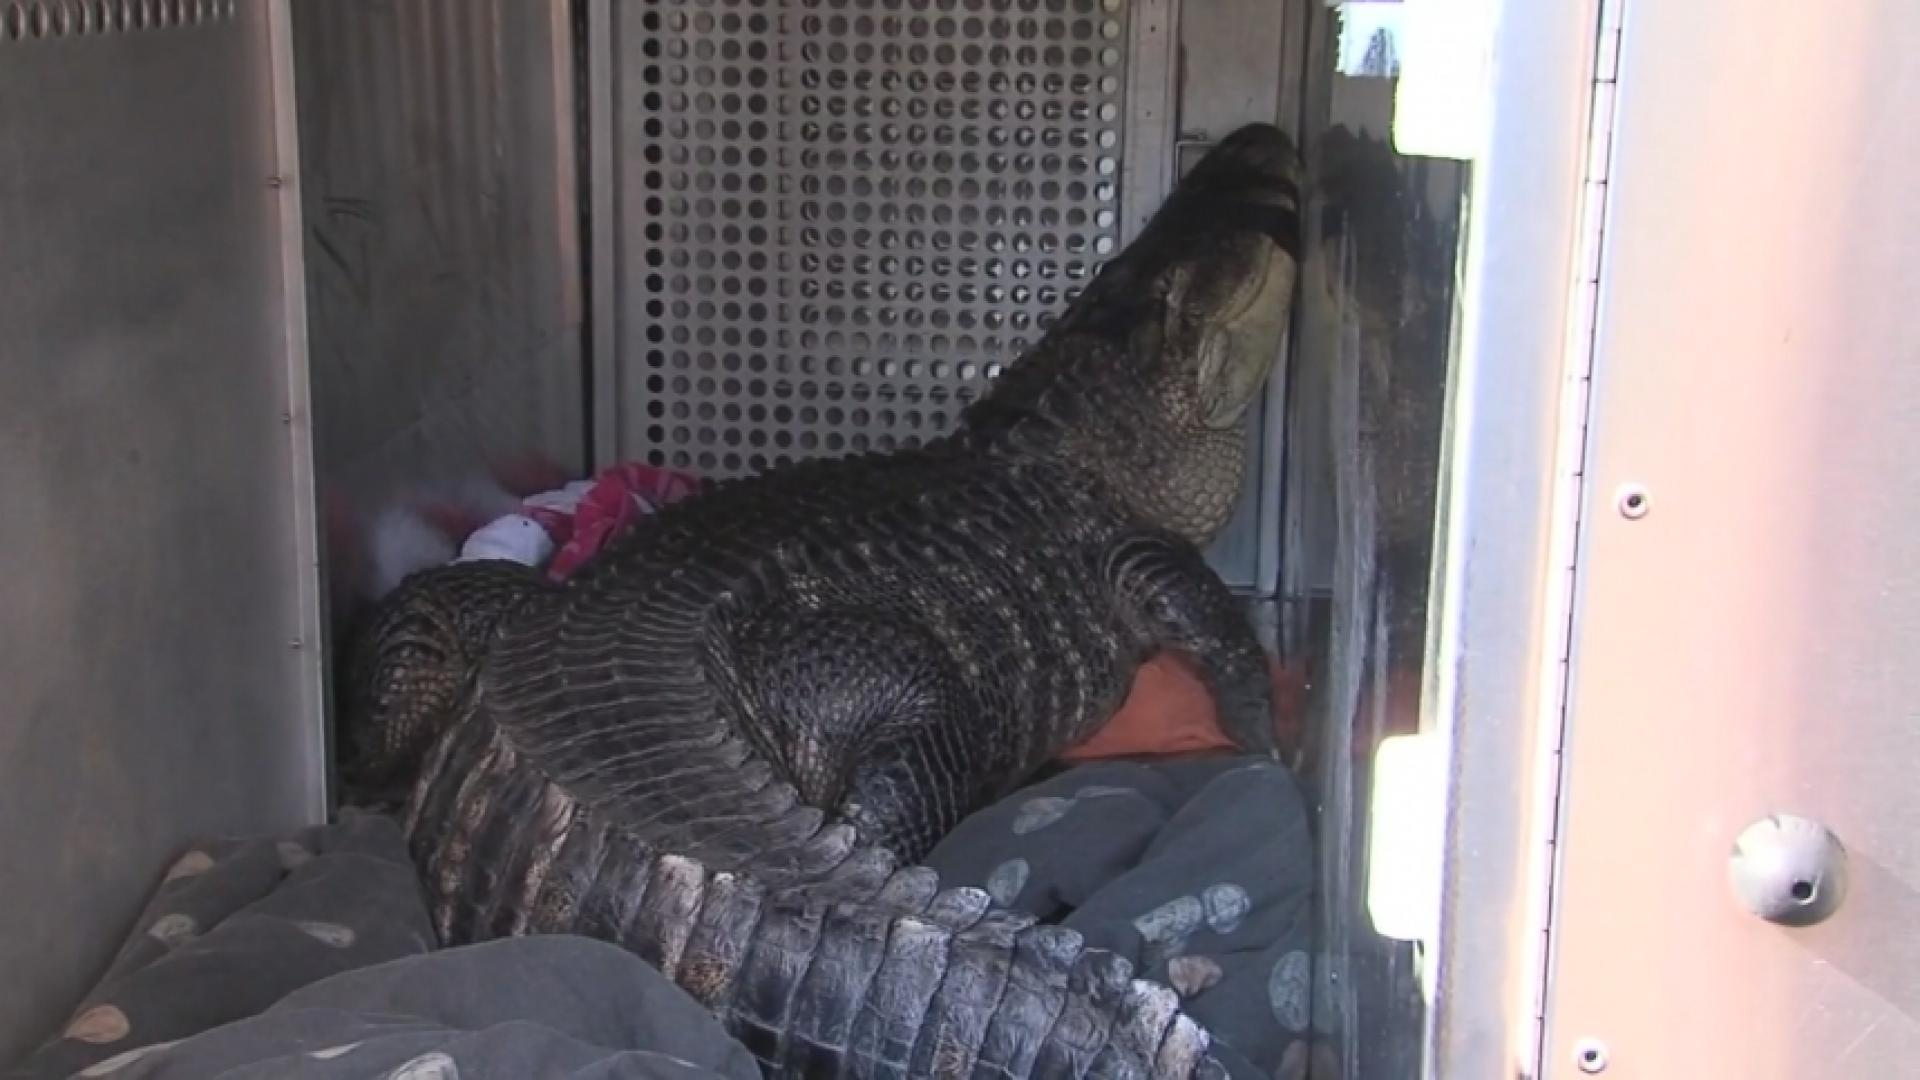 Pet Alligator Removed From Home